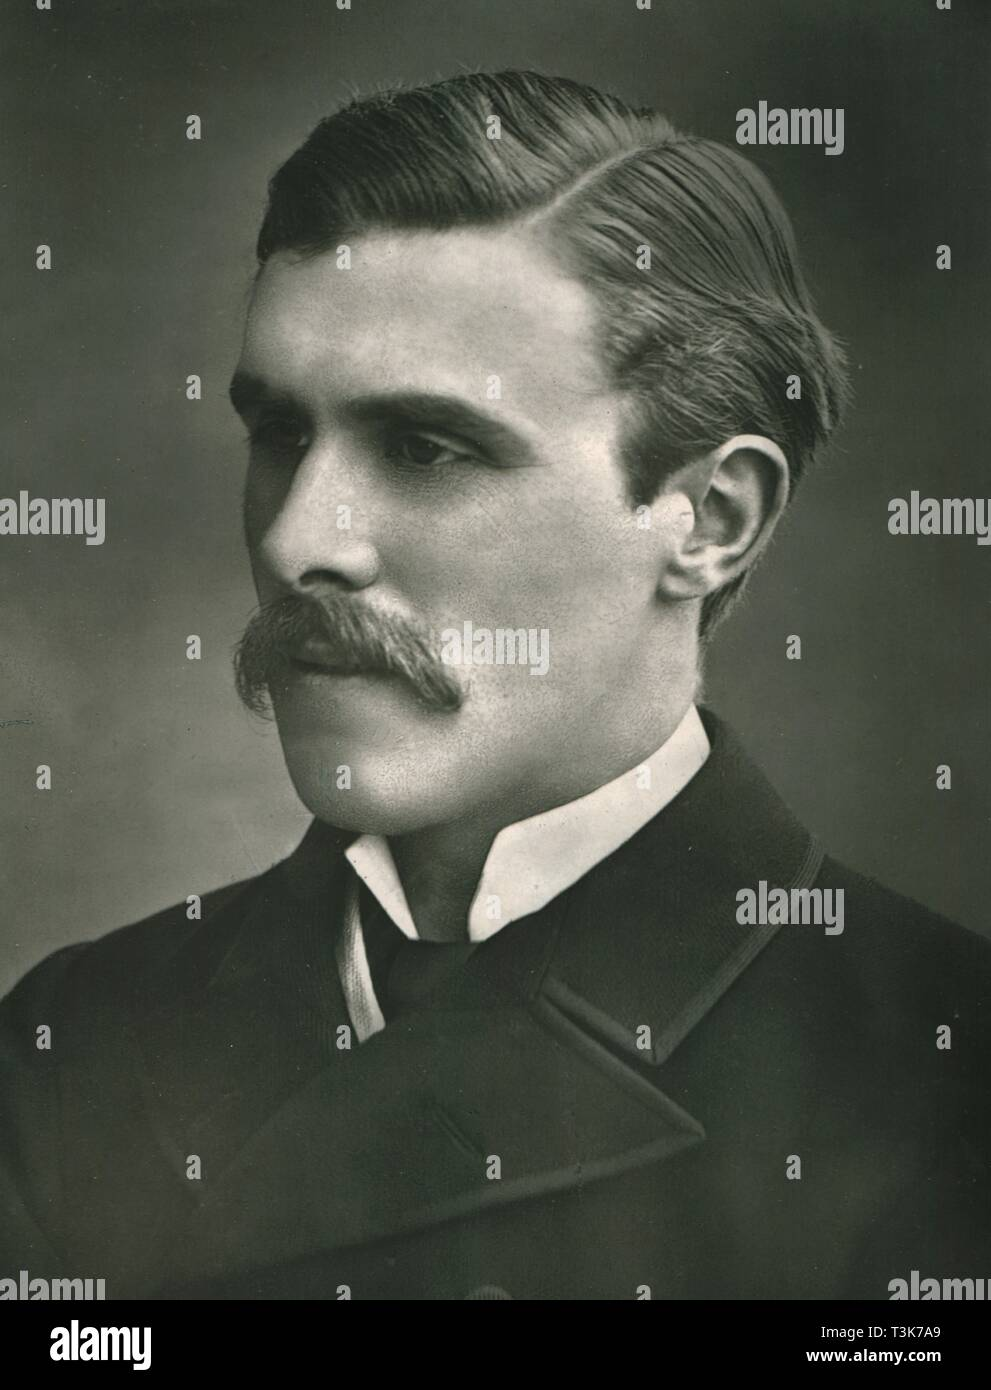 "'The Right Honorable William St.John Fremantle Brodrick', c1899. Portrait of British Conservative politician William St John Fremantle Brodrick 1st Earl of Midleton, (1856-1942). From ""Our Conservative and Unionist Statesmen"", Volume II. [Newman, Graham & Co, London, c1899] - Stock Image"